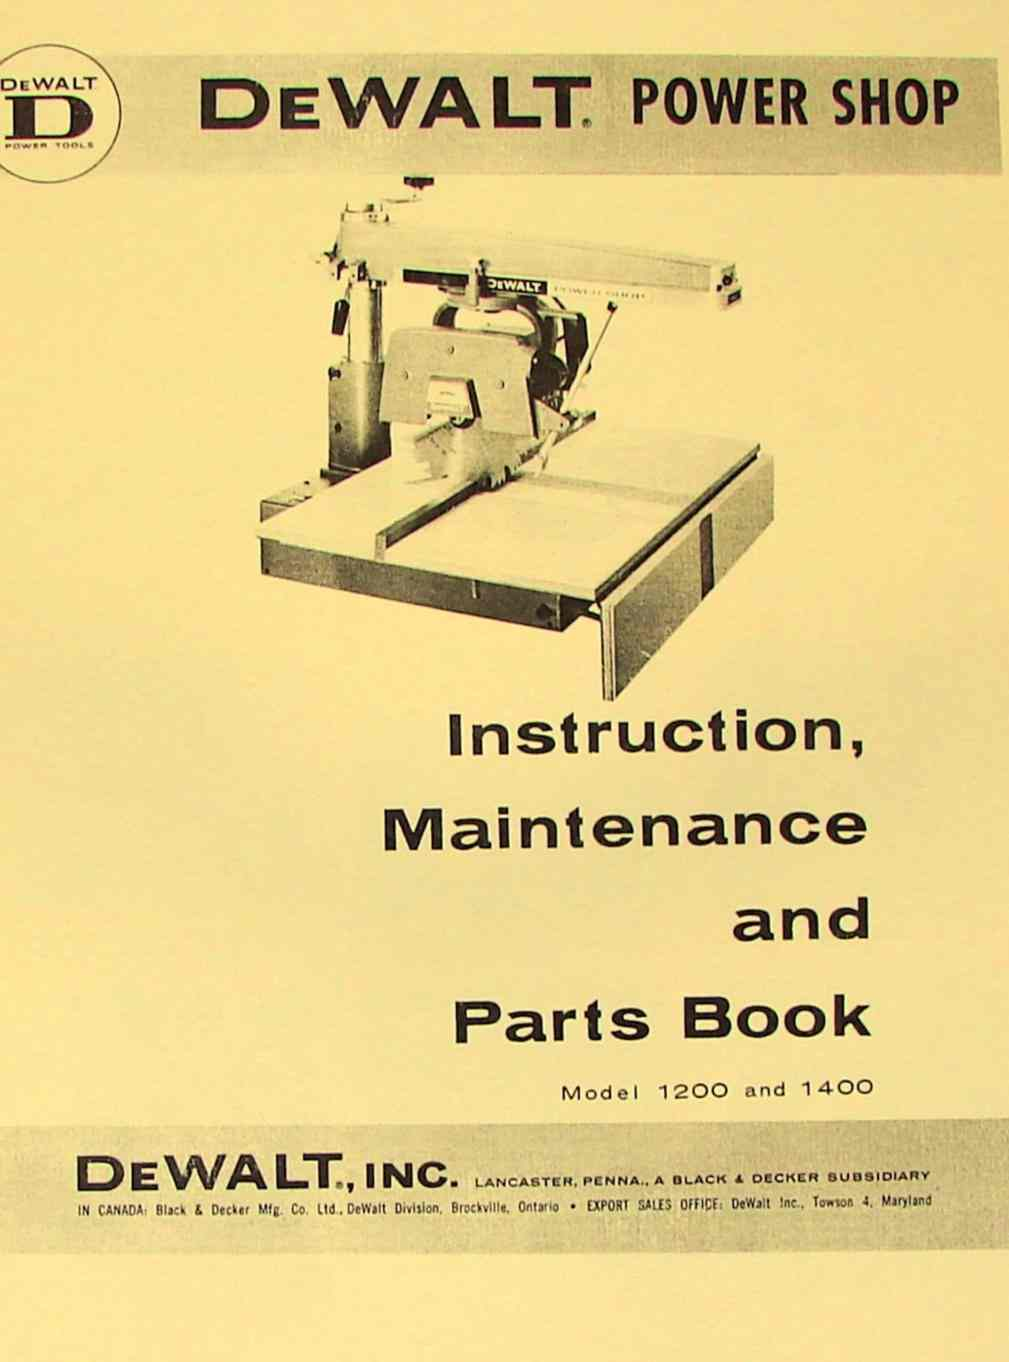 0262 dewalt power shop 1200 & 1400 radial arm saw instructions & parts  at panicattacktreatment.co